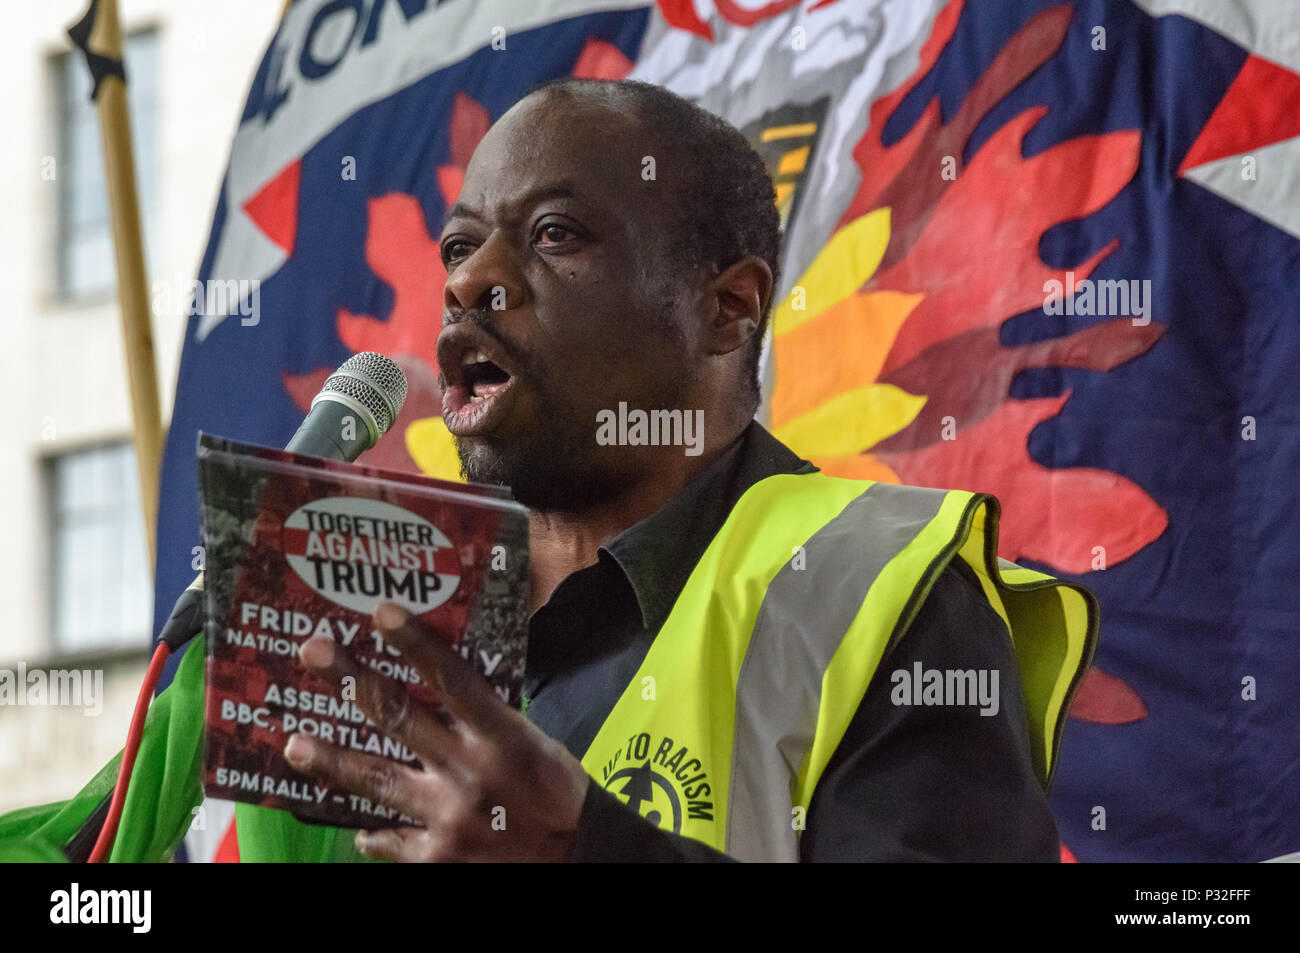 London, UK. 16th June 2018. Weyman Bennett of Stand up to Racism speaks at the protest at Downing St in solidarity with the 72 killed and the survivors of the Grenfell fire a year ago organised by Justice4Grenfell and the FBU (Fire Brigades Union.) After some speeches they marched to the Home Office for a brief protest before returning to Downing St for more speeches. Credit: Peter Marshall/Alamy Live News - Stock Image